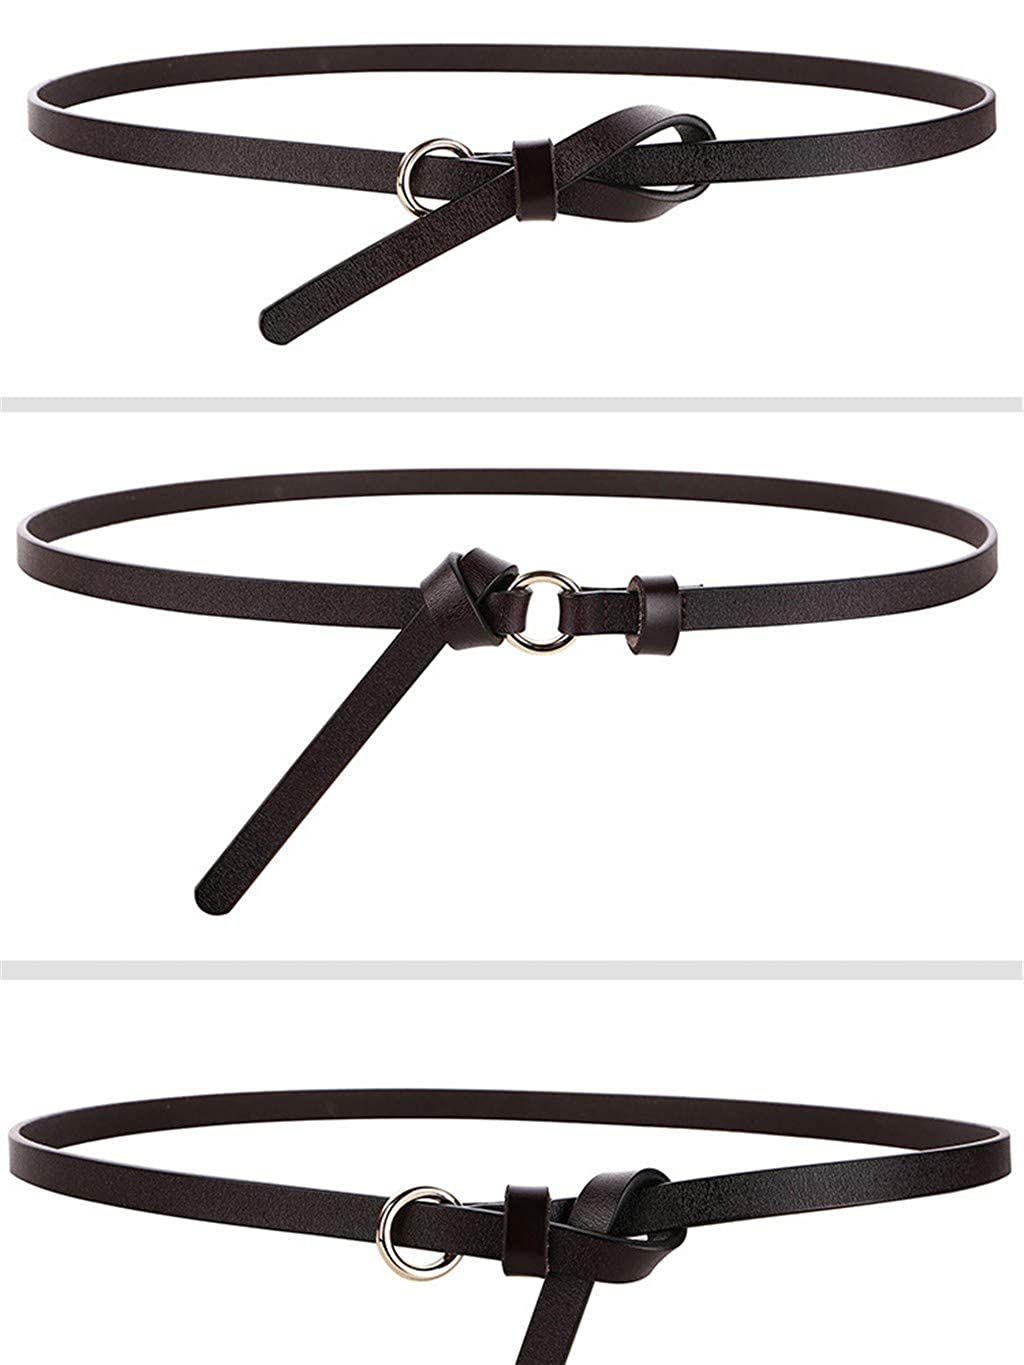 Leather knotted and tied leather belt